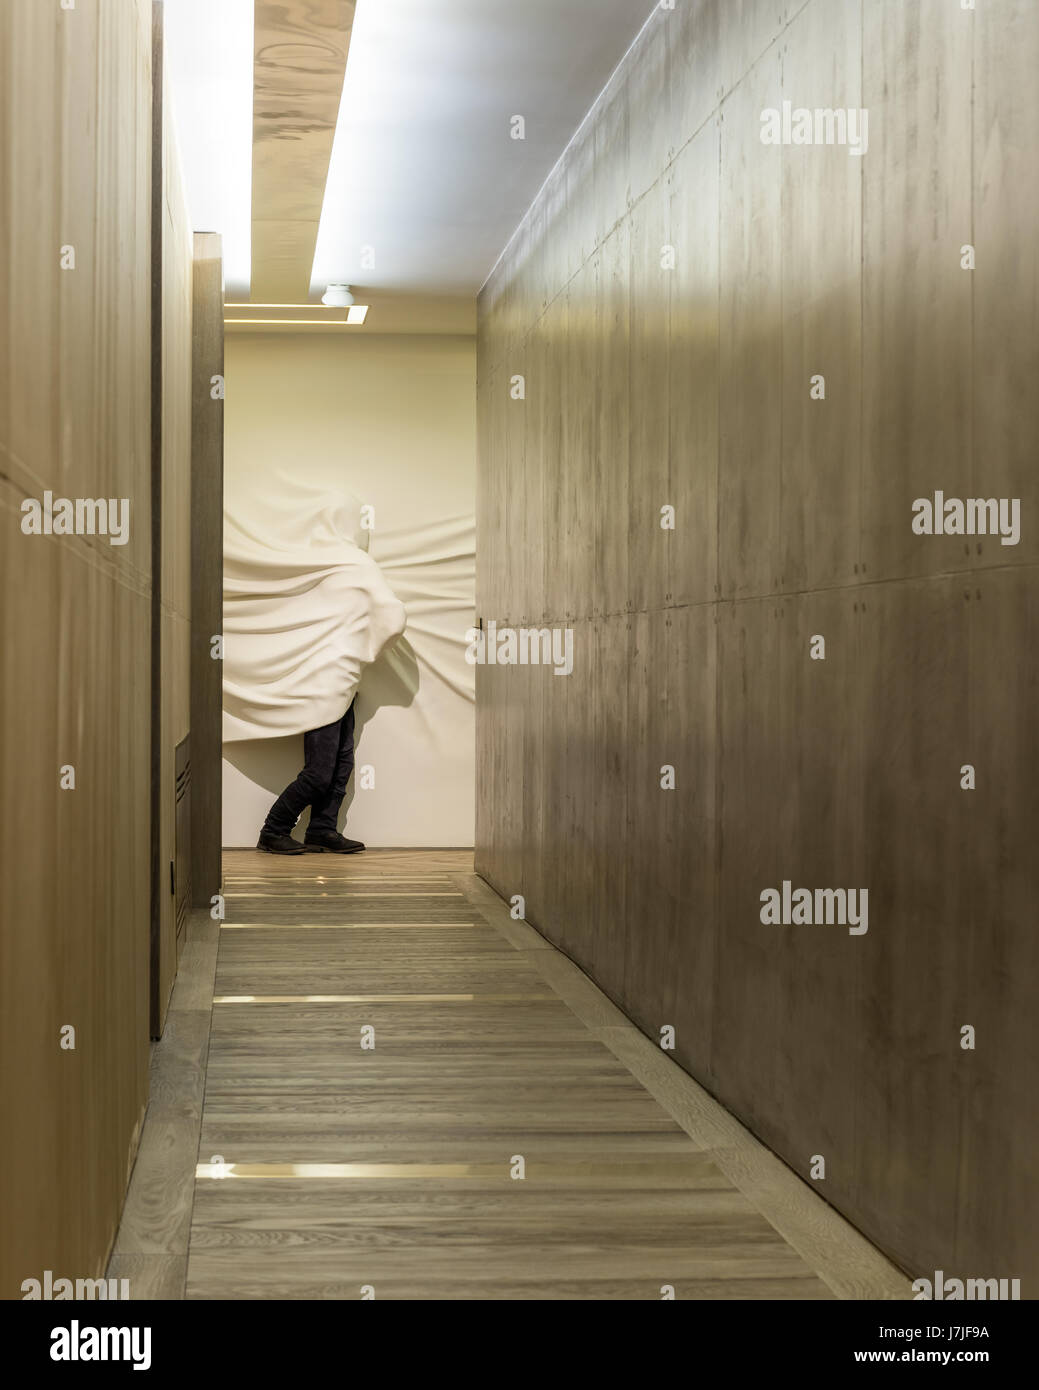 Shrouded figure sculpted from powdered glass by Daniel Arsham in hallway with polished concerete walls Stock Photo